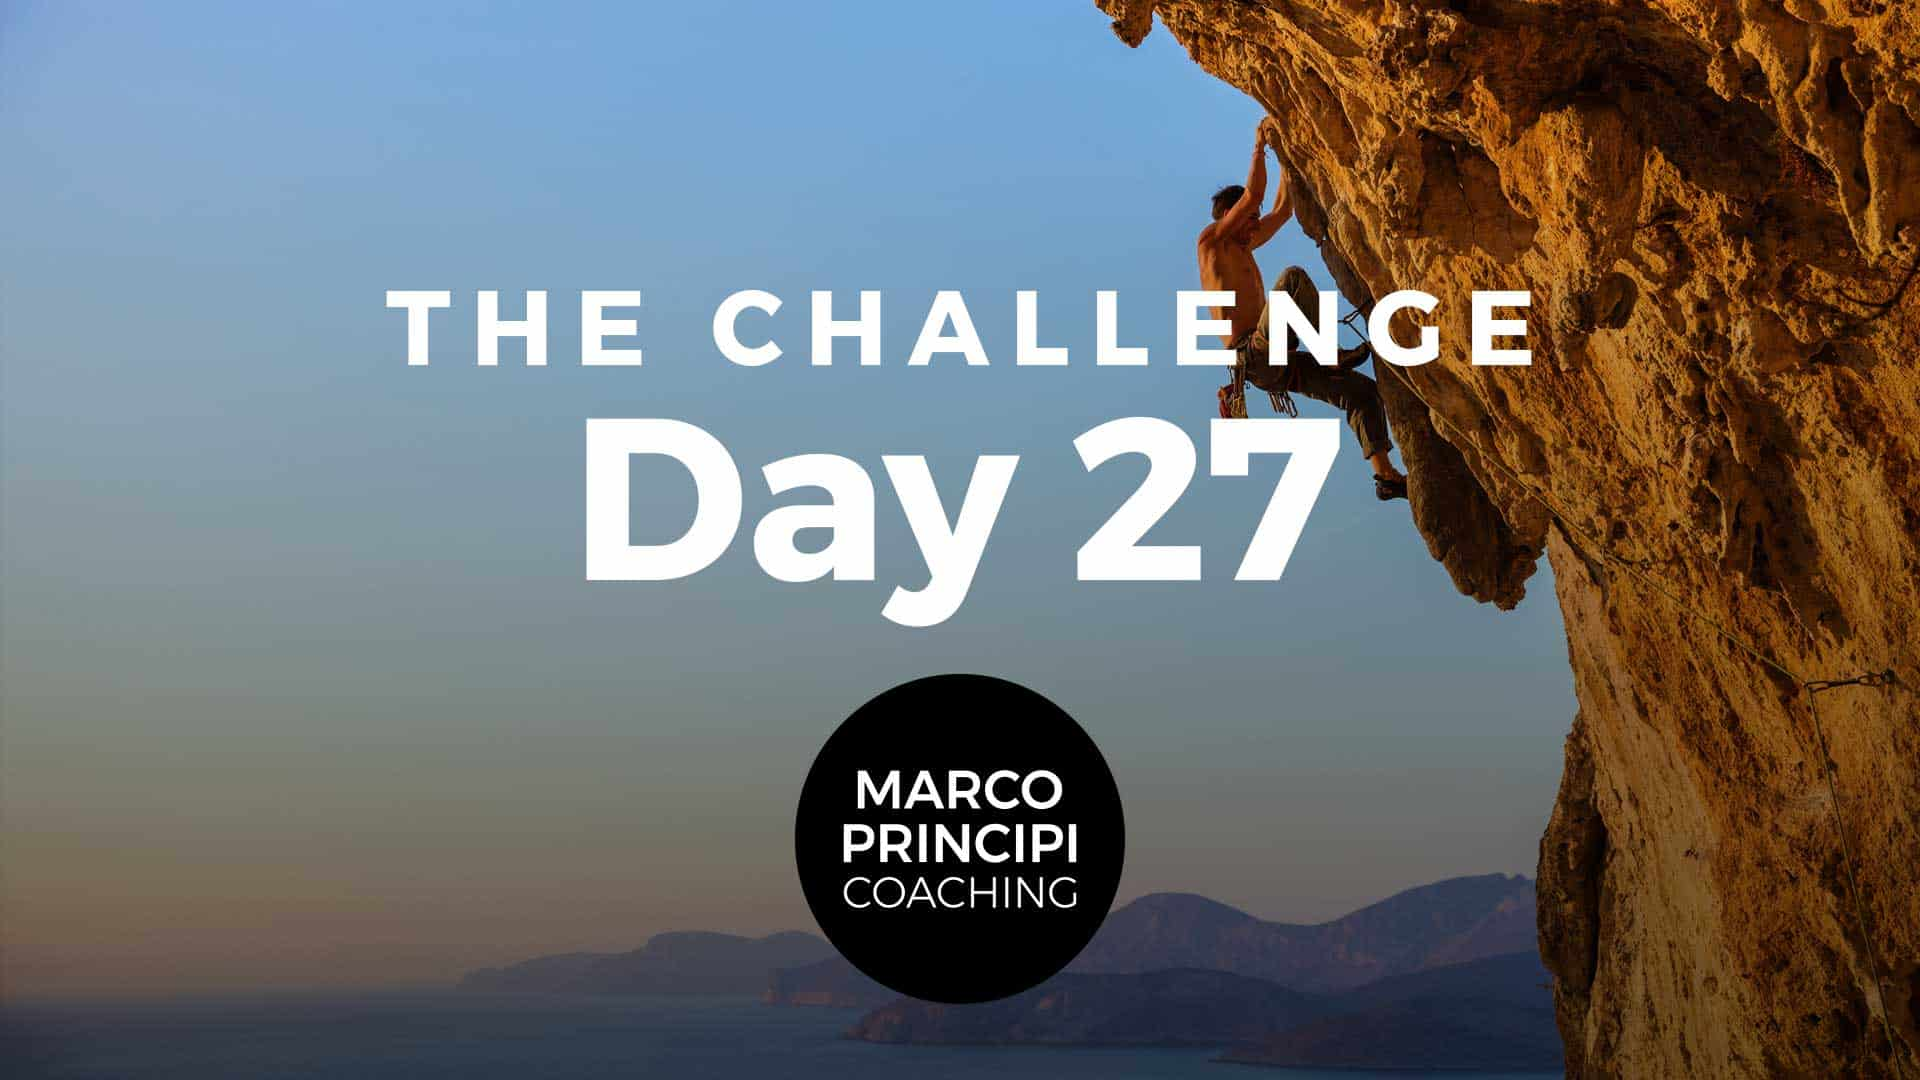 Marco Principi YT Cover The Challenge Day 027